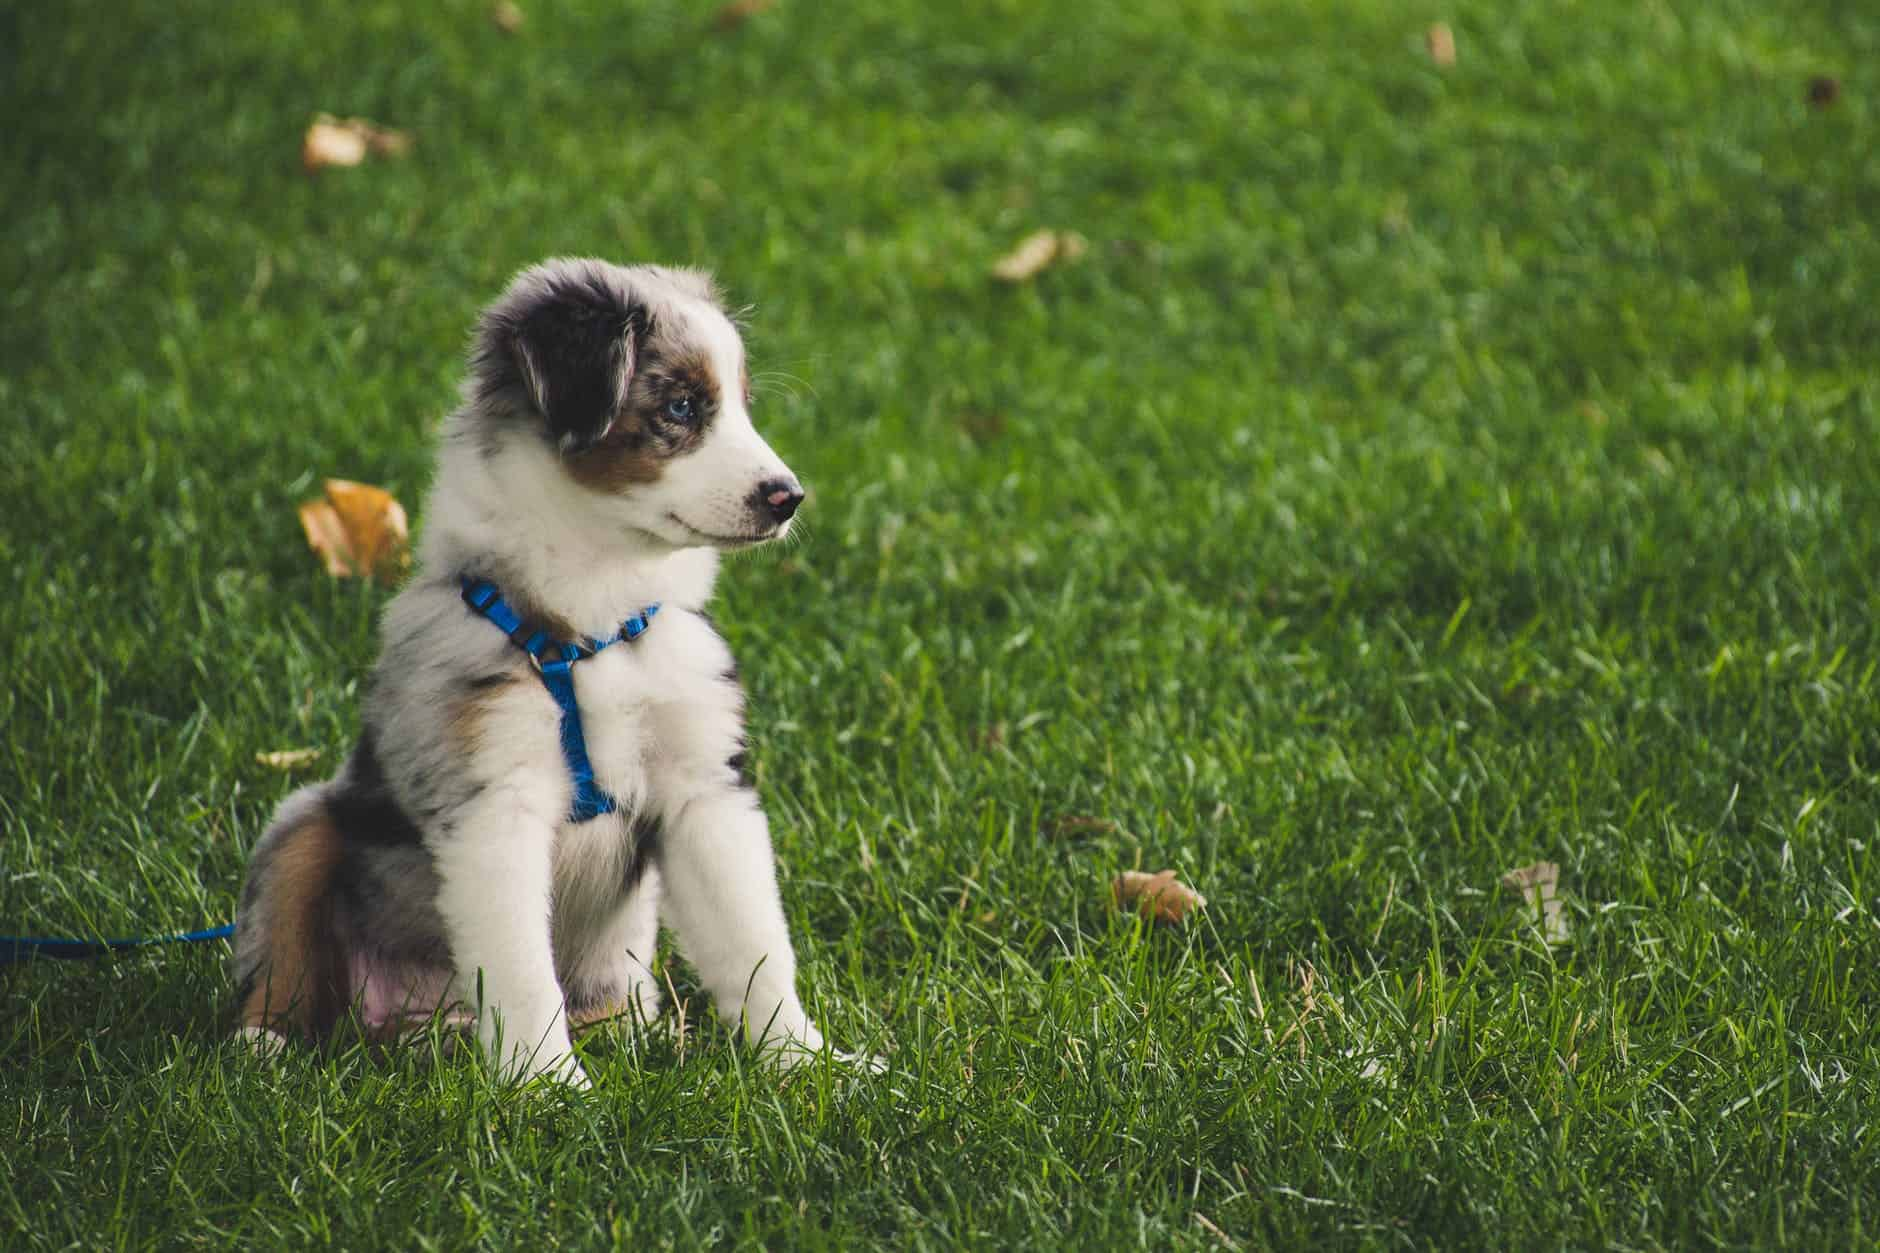 Leash Harness And Other Pet Care Products You Should Know